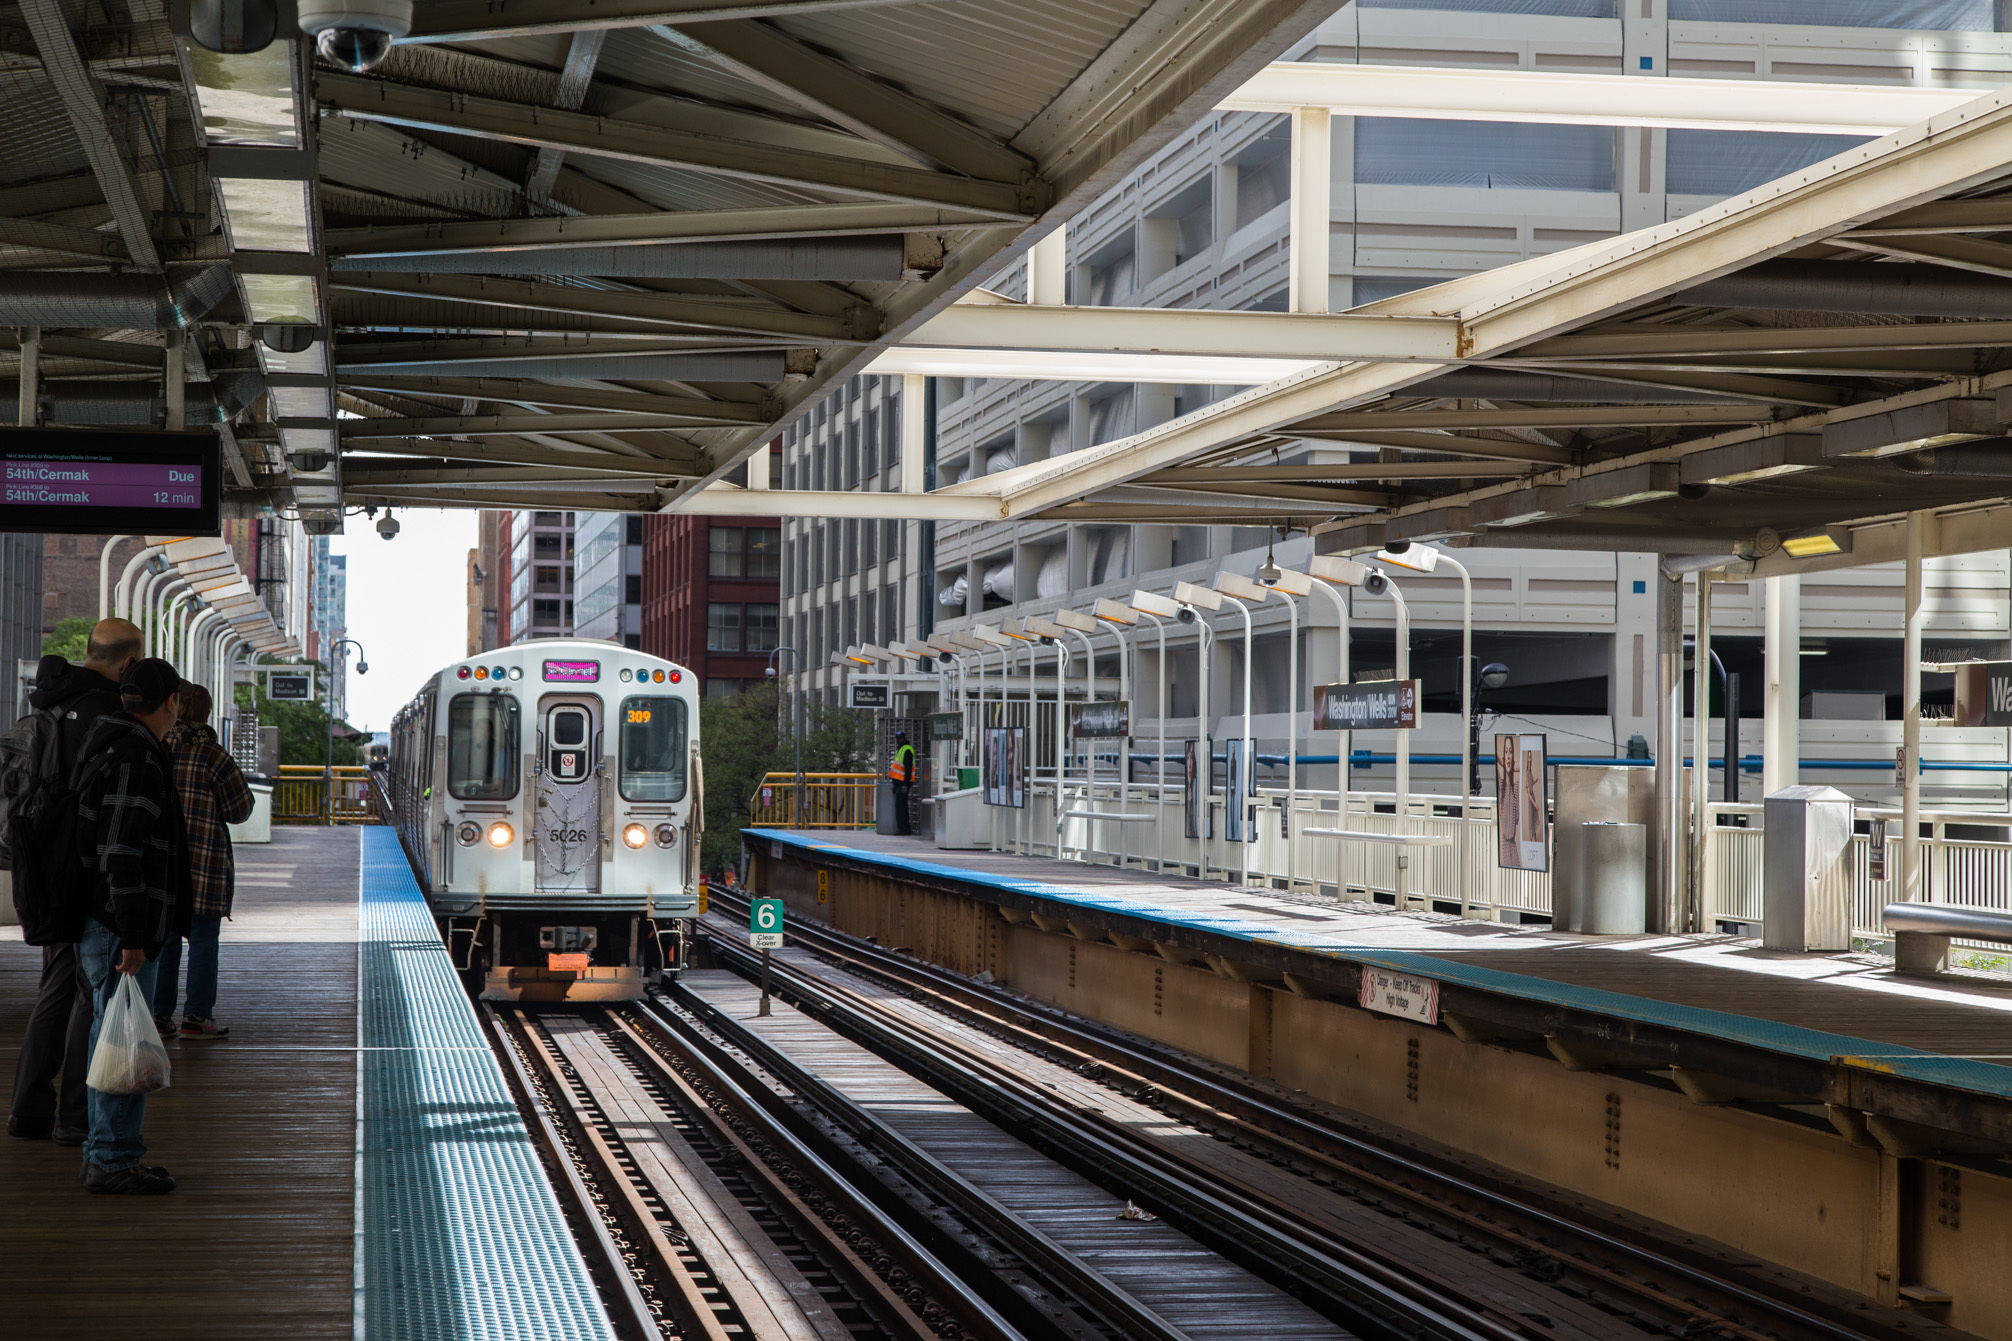 April is so unseasonably cold that CTA has agreed to keep its warming stations on